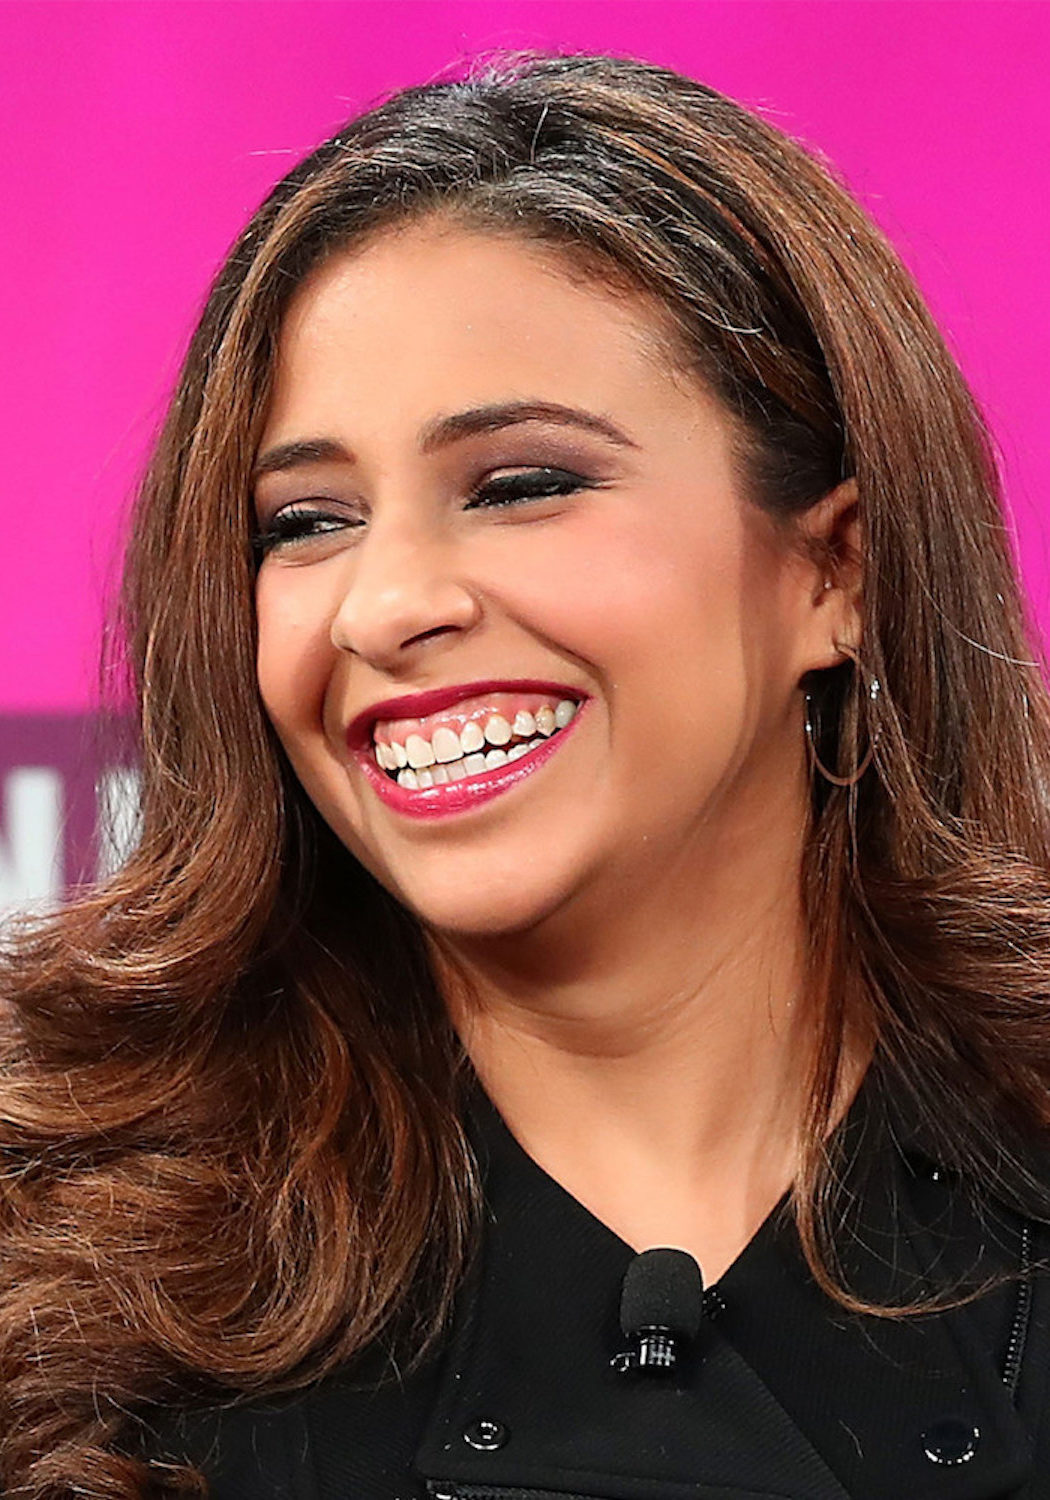 Erika Harold, Willoughby Avenue, The Five Fifths, KOLUMN Magazine, KOLUMN, African American Politics, Black in Politics